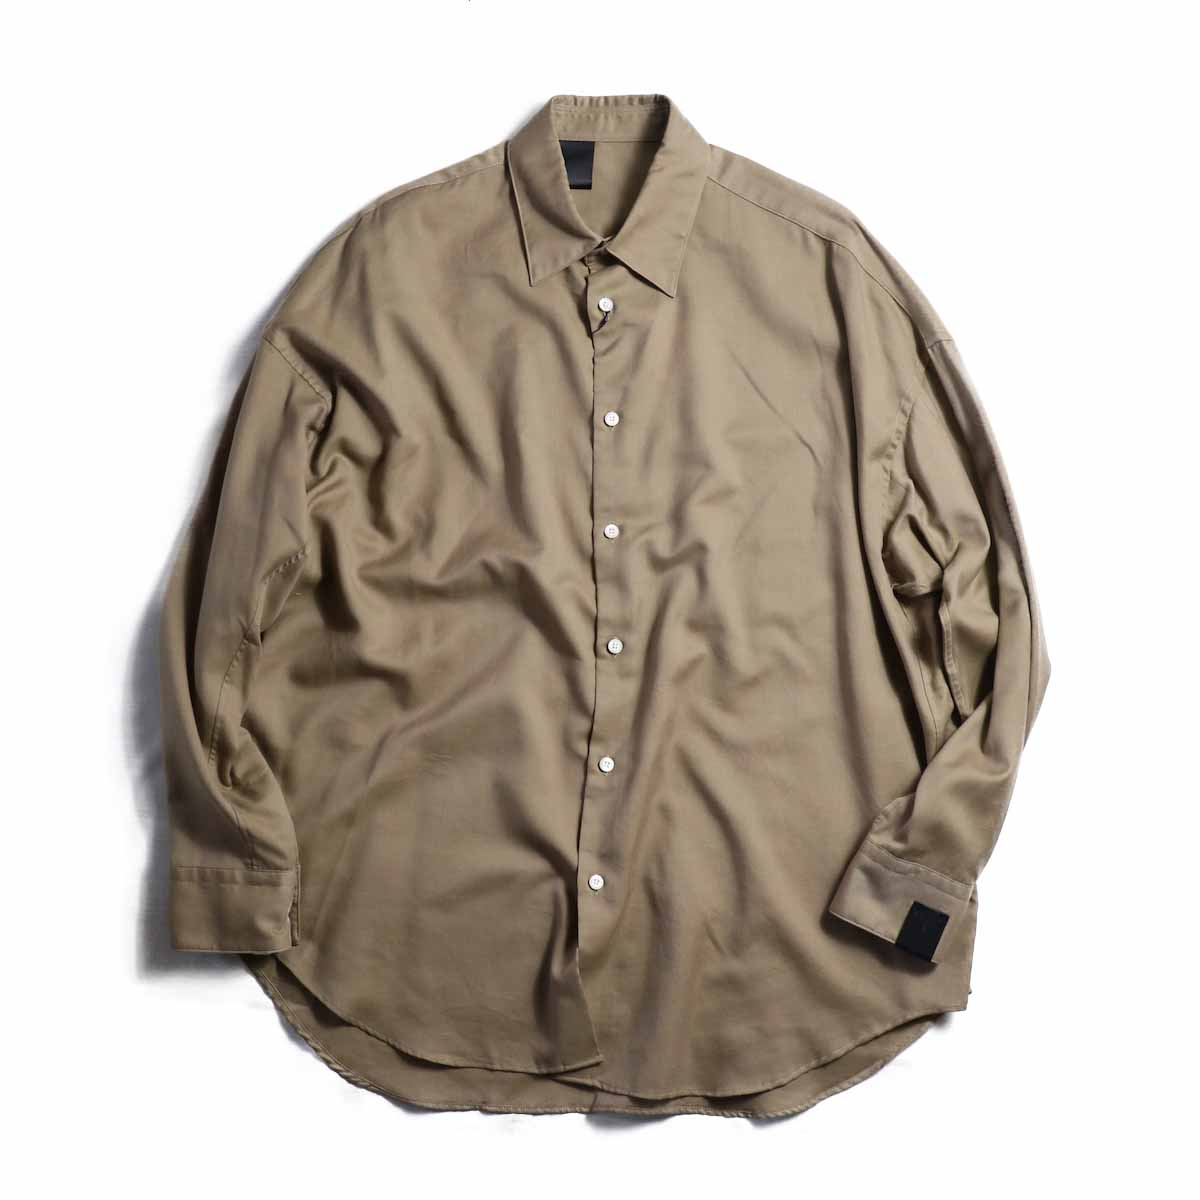 N.HOOLYWOOD / 282-SH09-012-peg LONG SLEEVE SHIRT -BEIGE